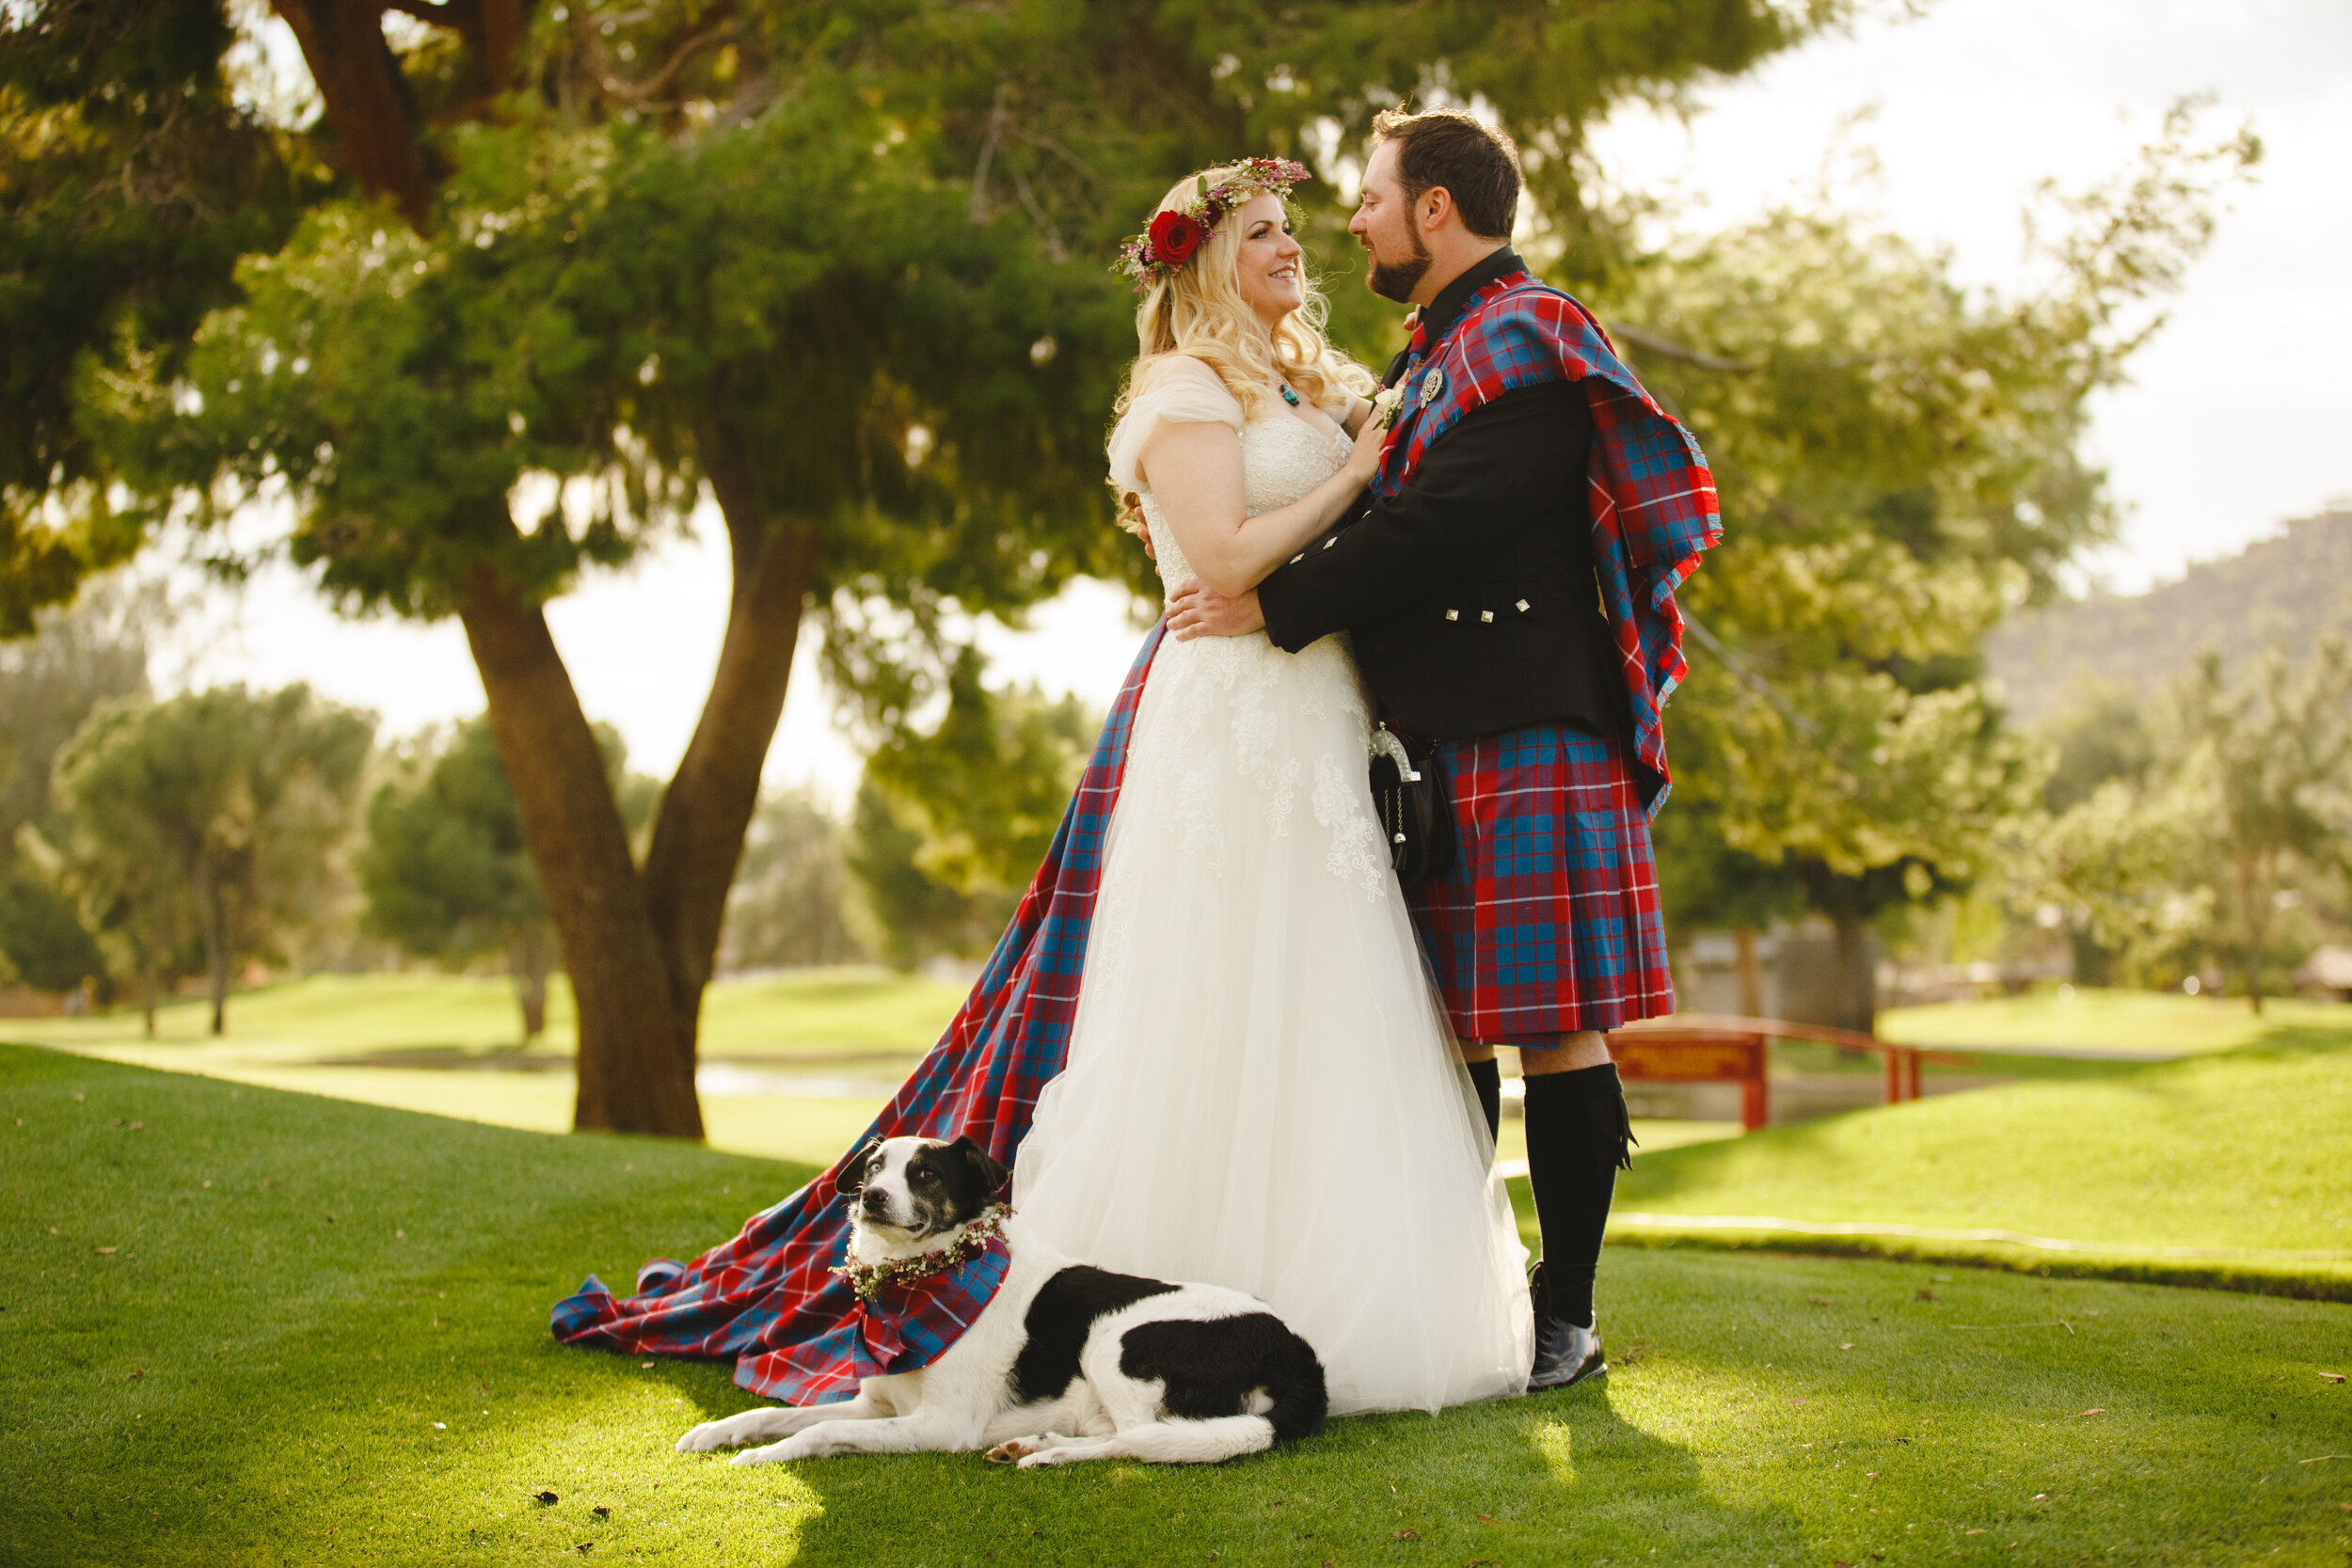 Bride and groom in highland kilt dress and a dog embracing Scottish heritage in their wedding with handmade Scottish tartan.jpg